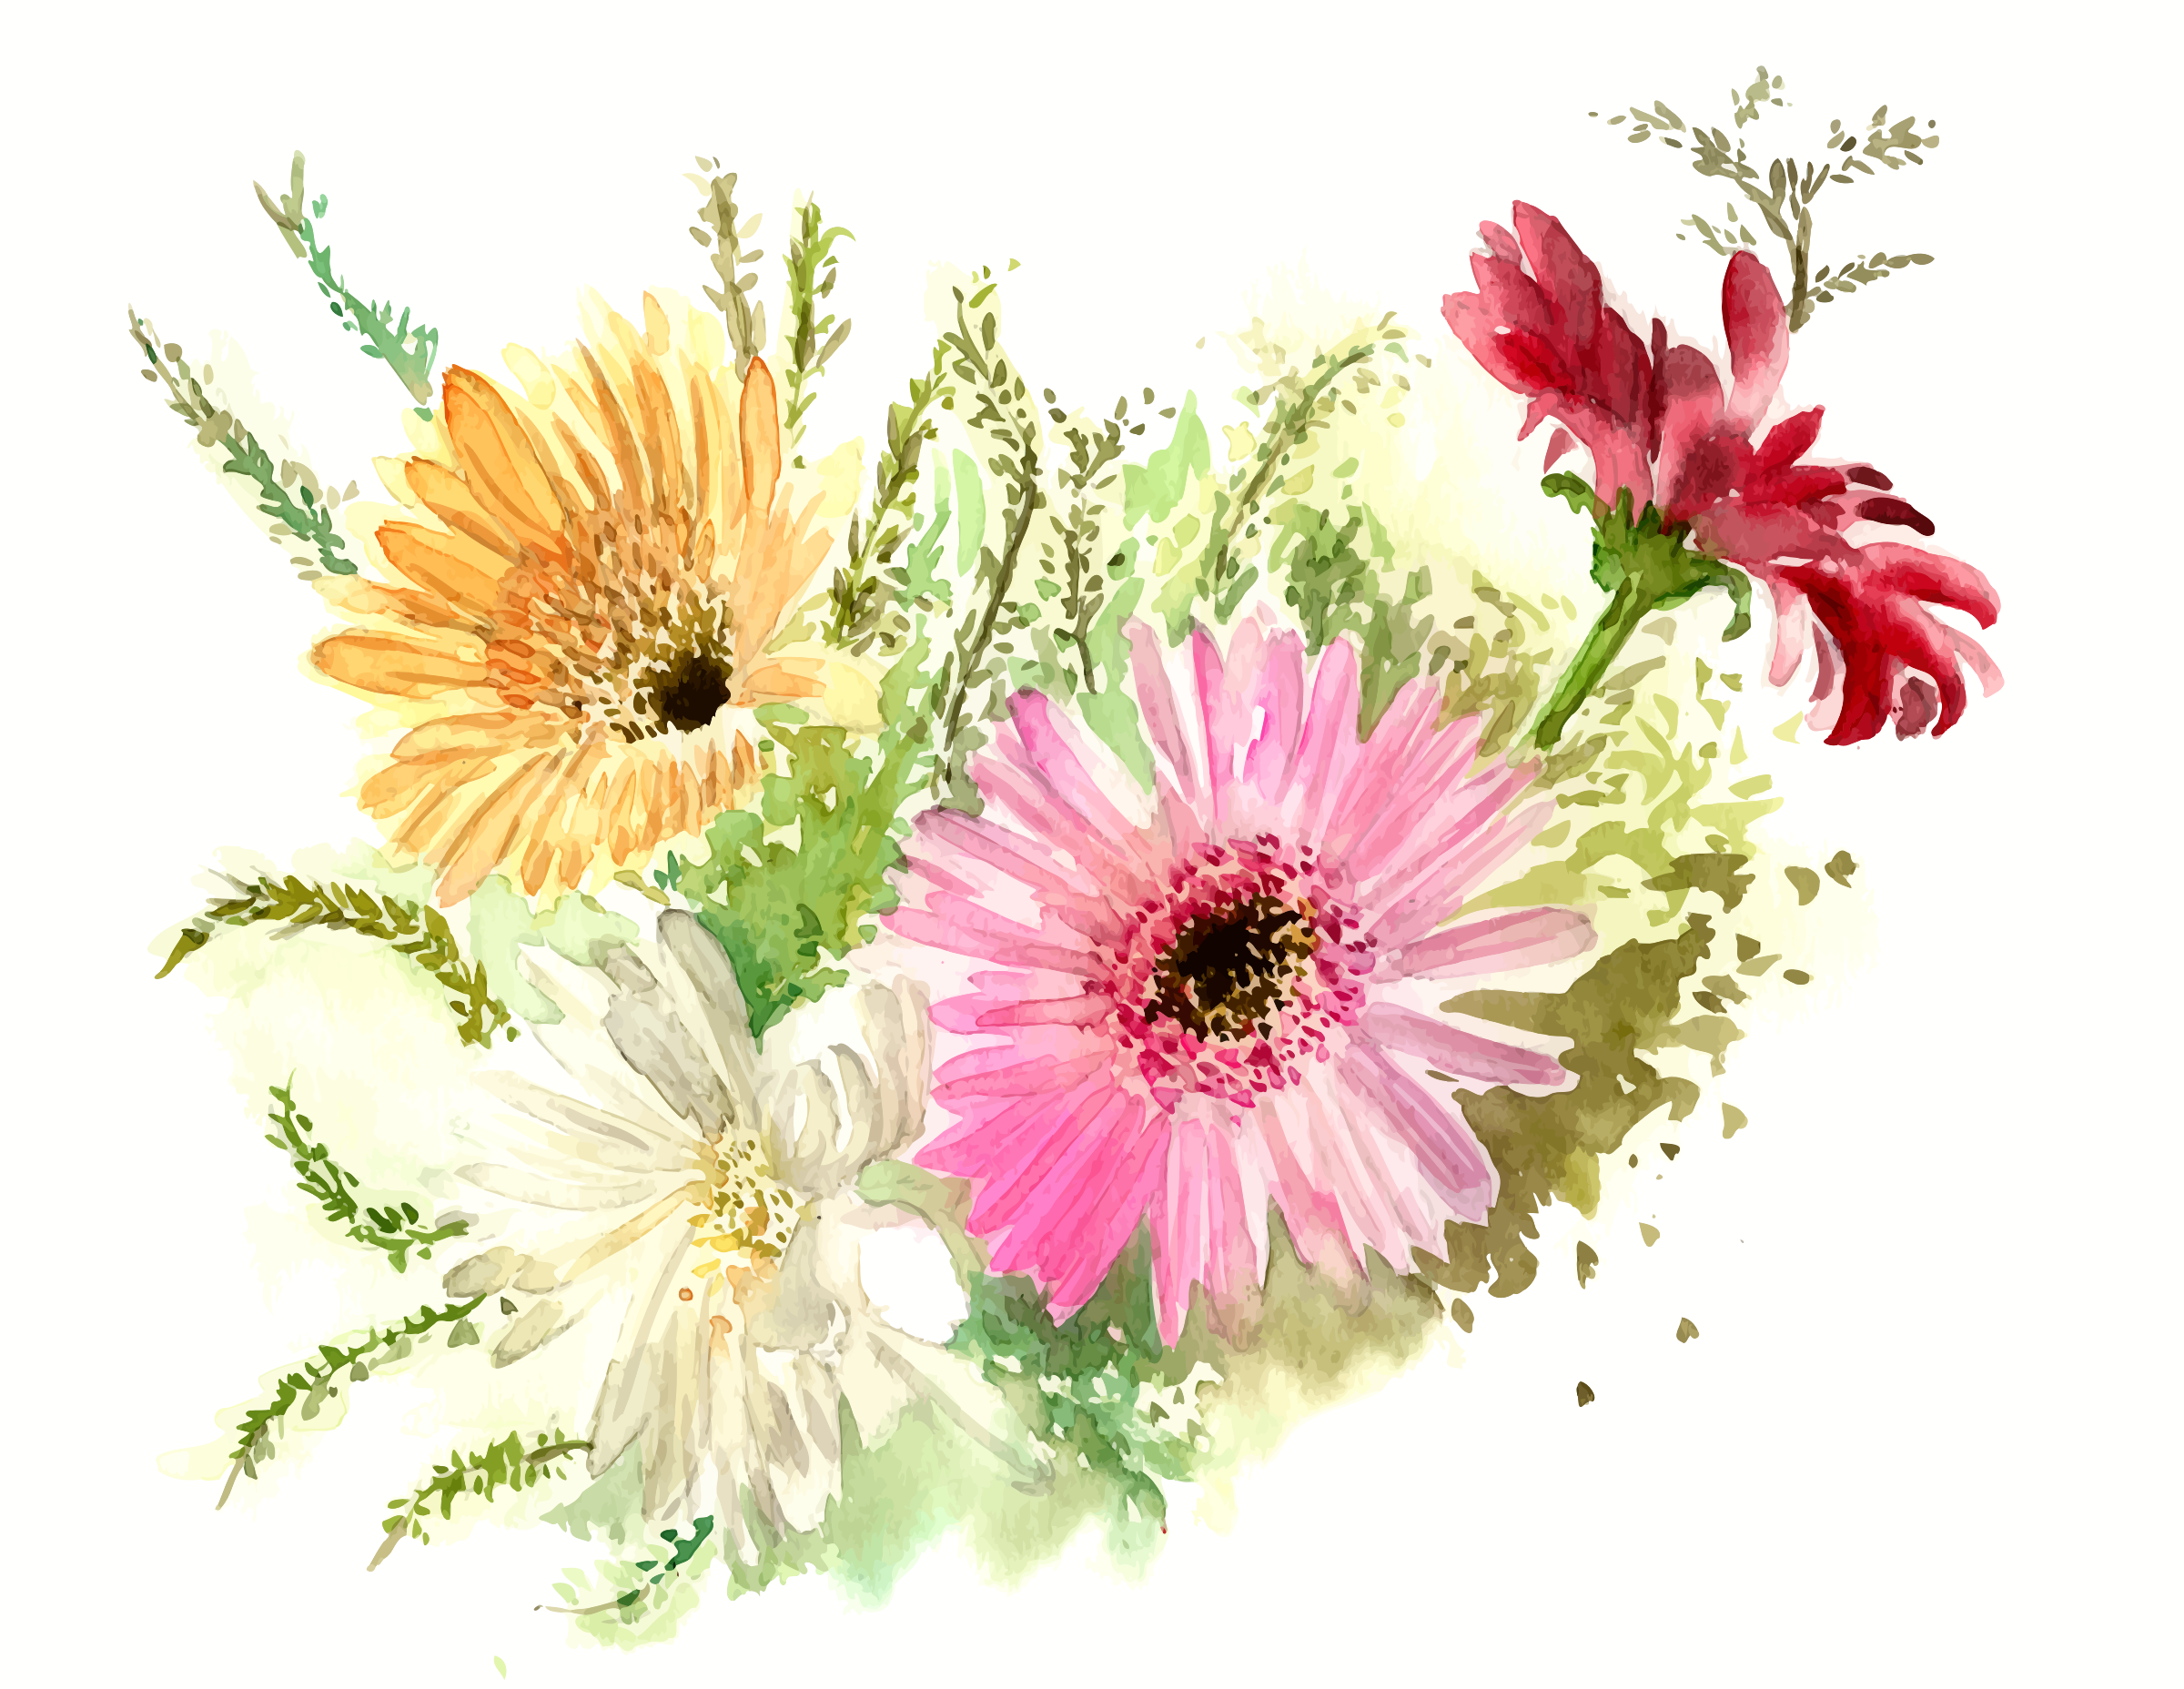 cristieleung's Flowers vectorised by Firkin